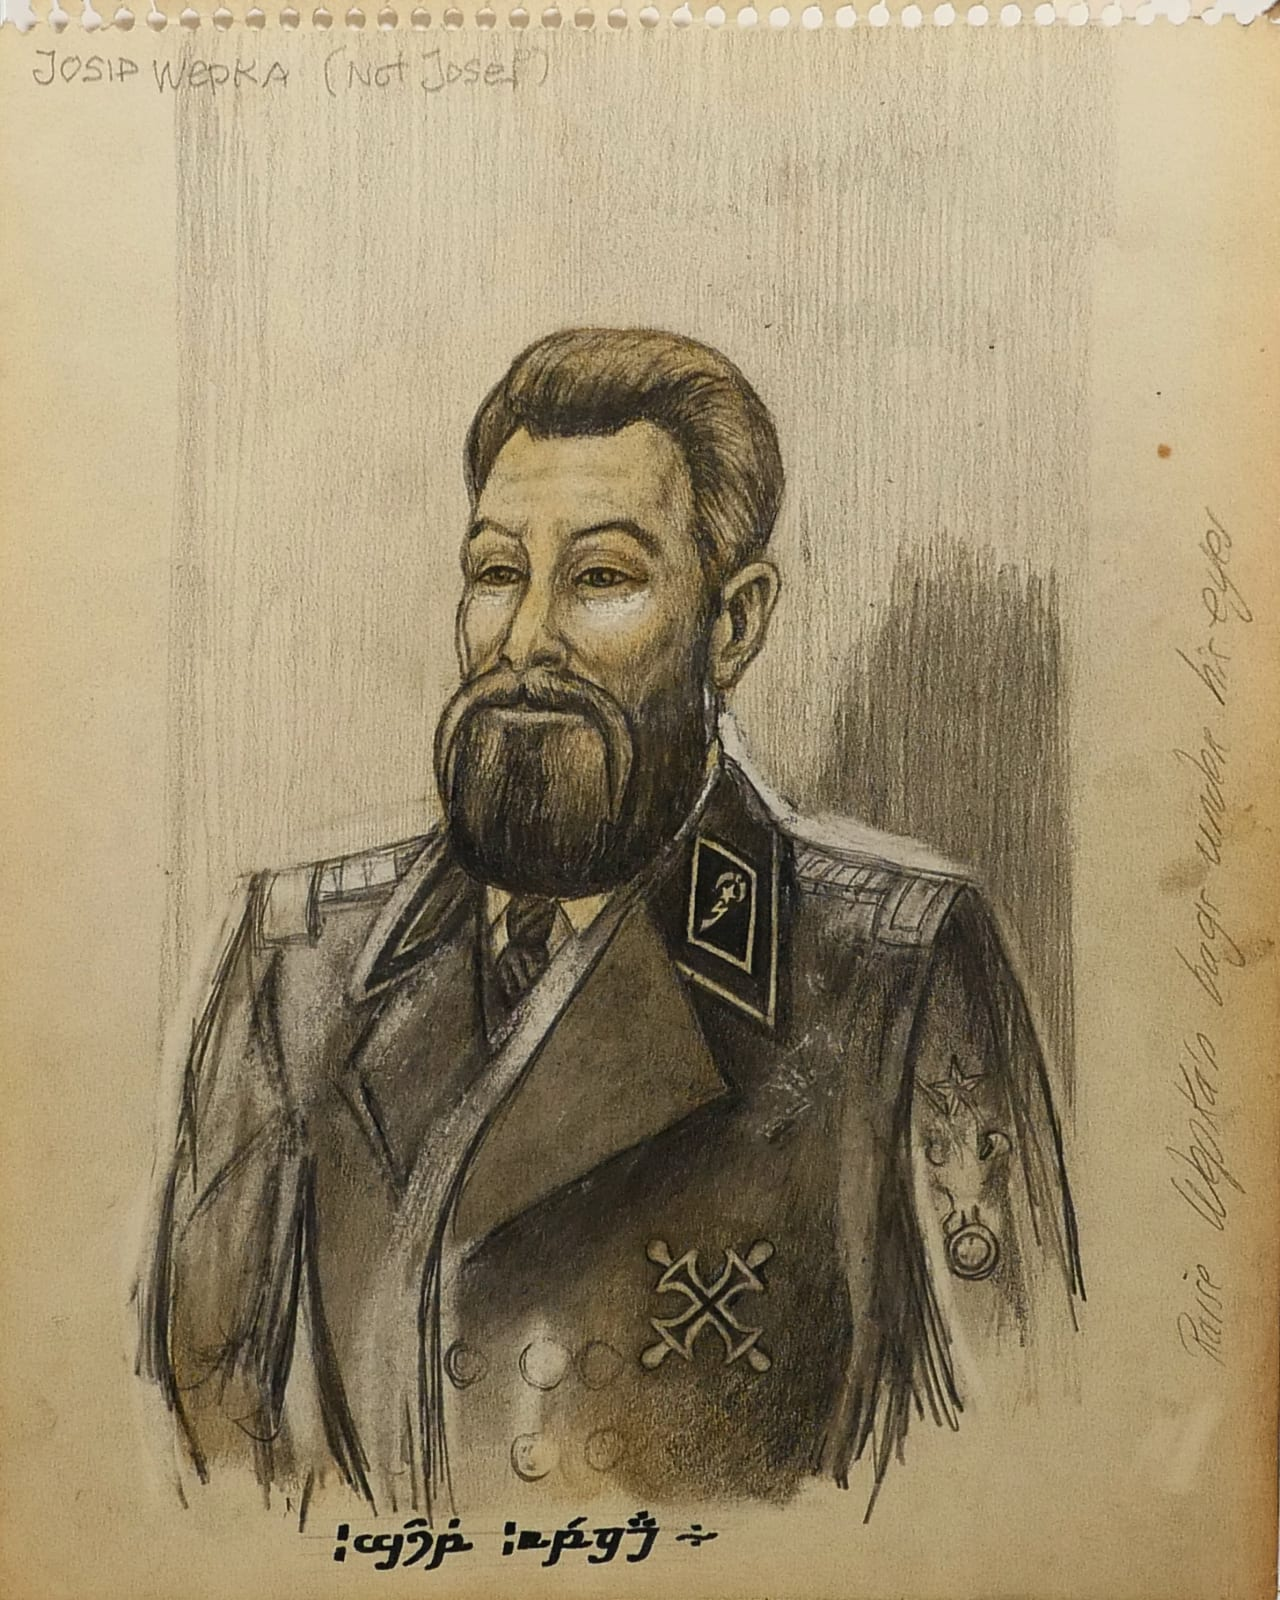 Josip Wepka portrait ca. 1970s Pencil and colored pencil on sketch paper 10 x 8 in. (RK 138) $4,500